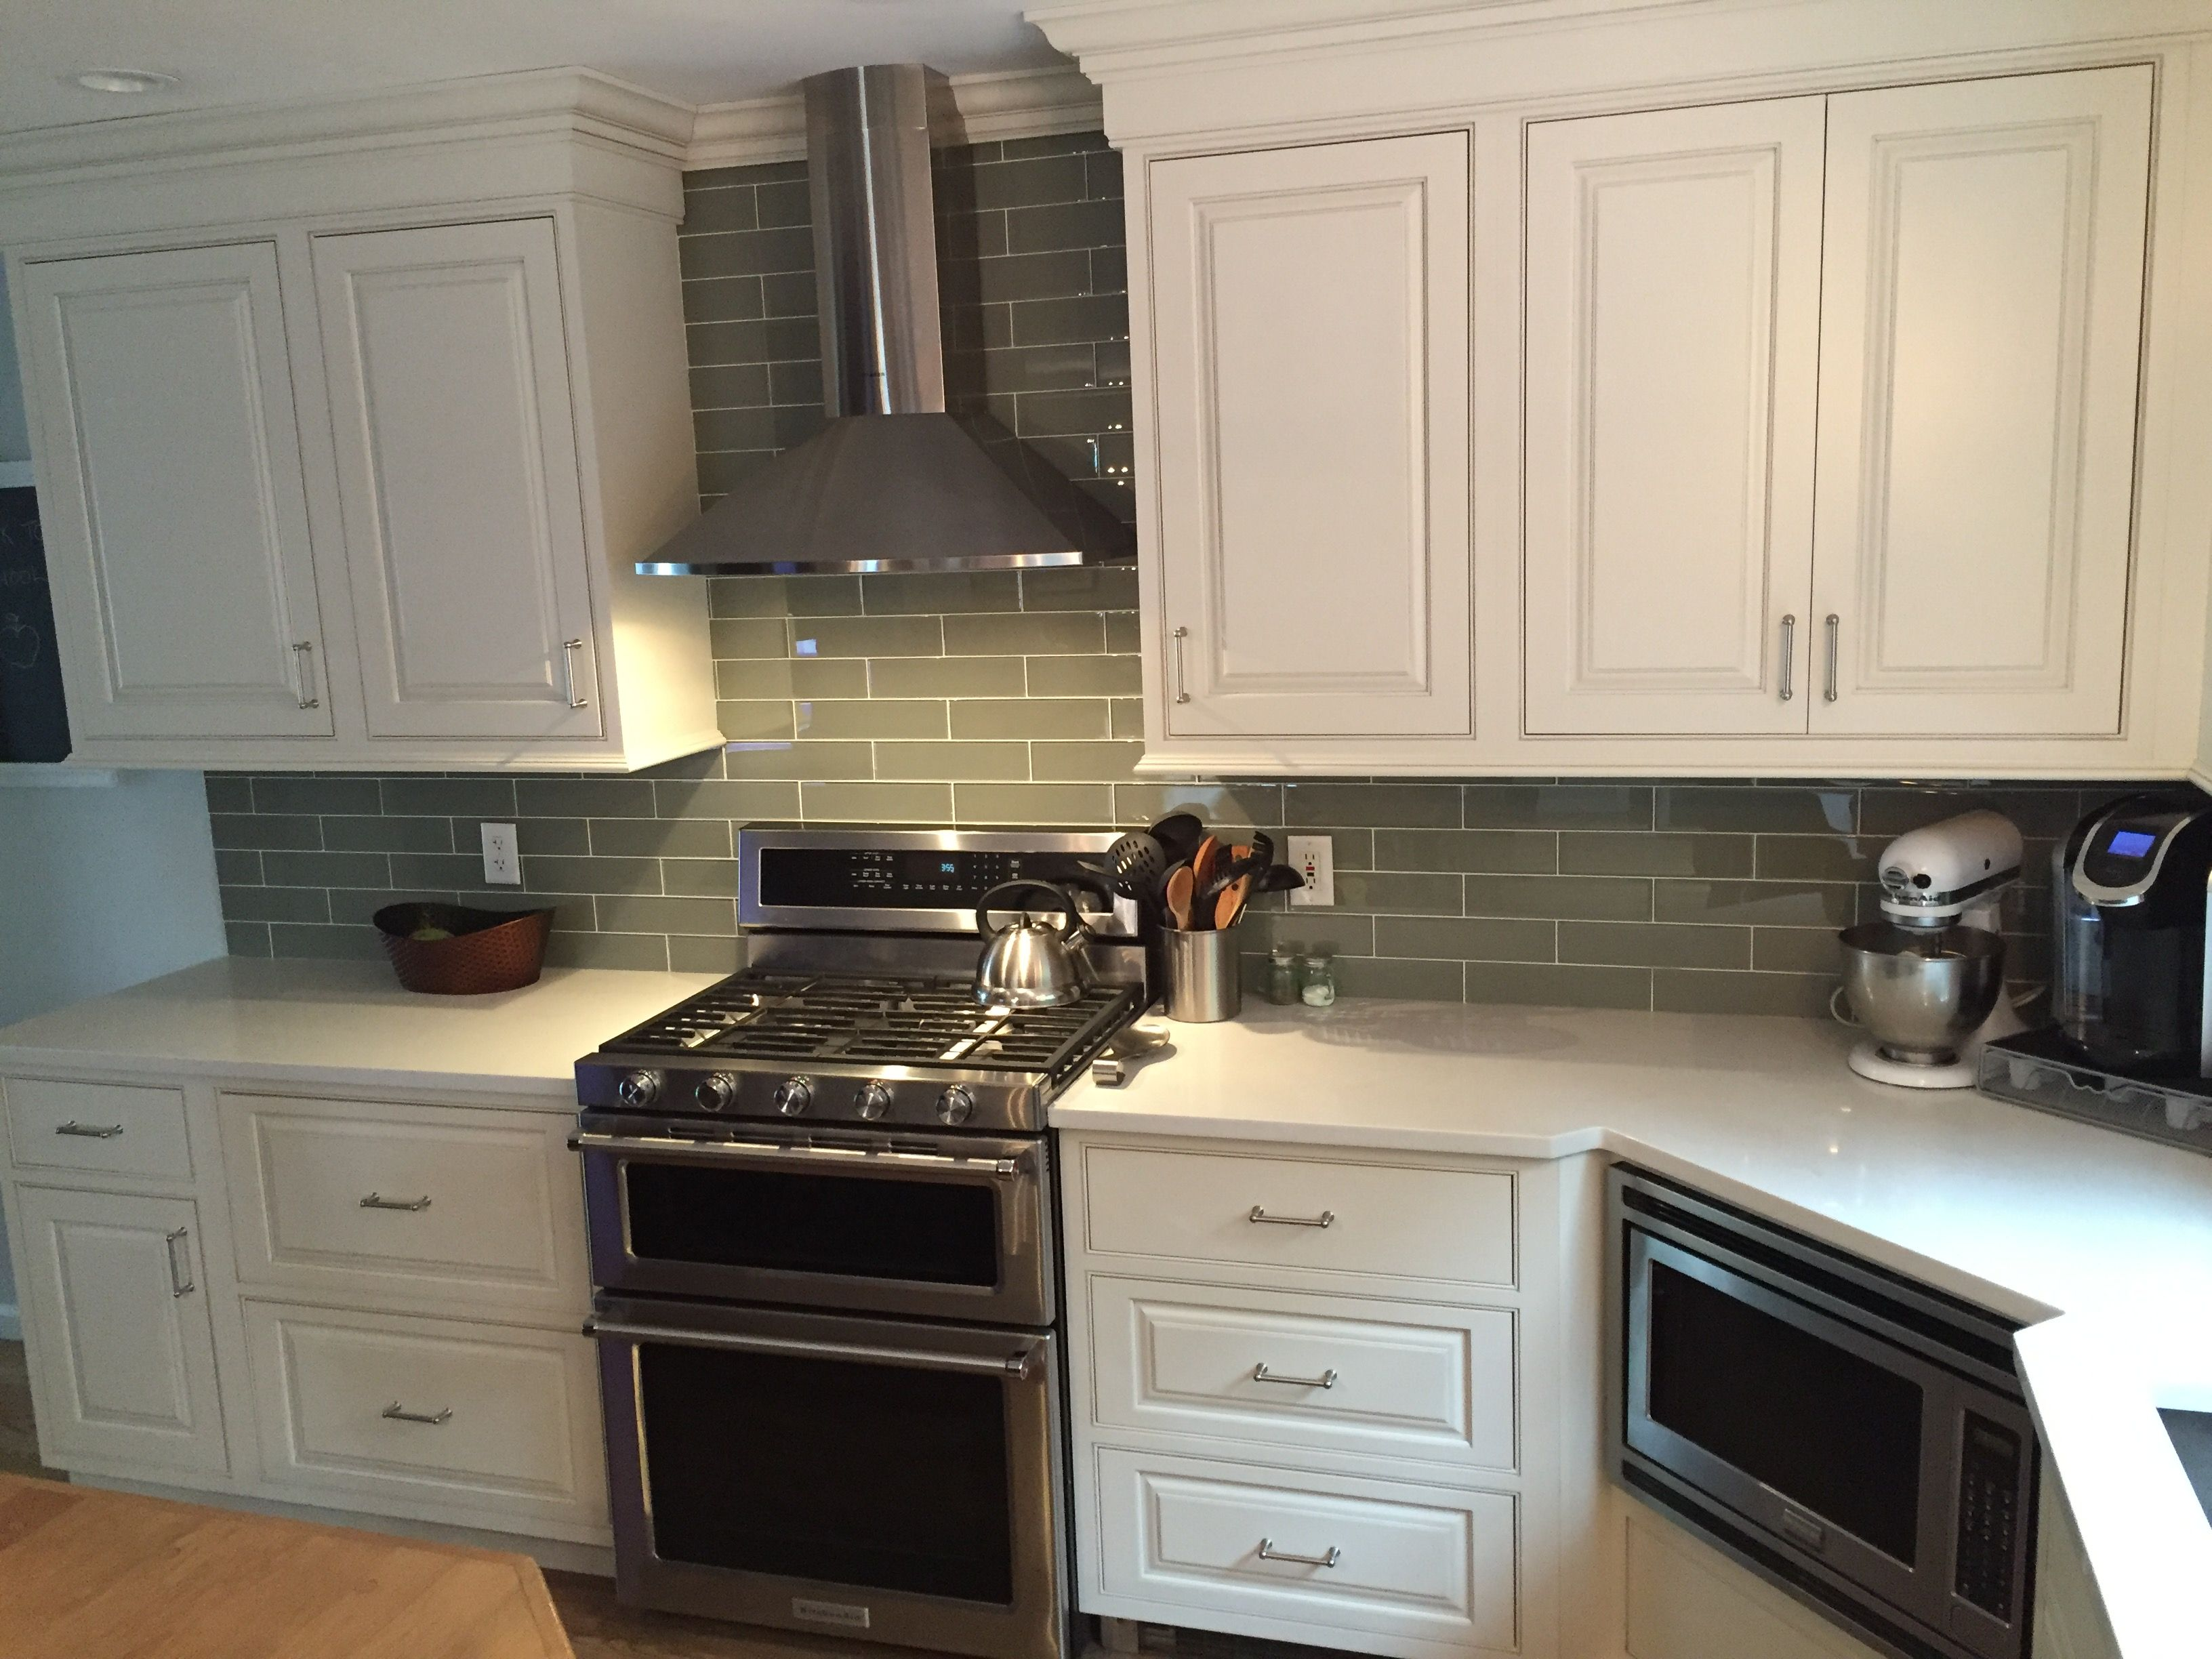 Kitchen remodel - Shiloh beaded inset cabinets, Faber ...